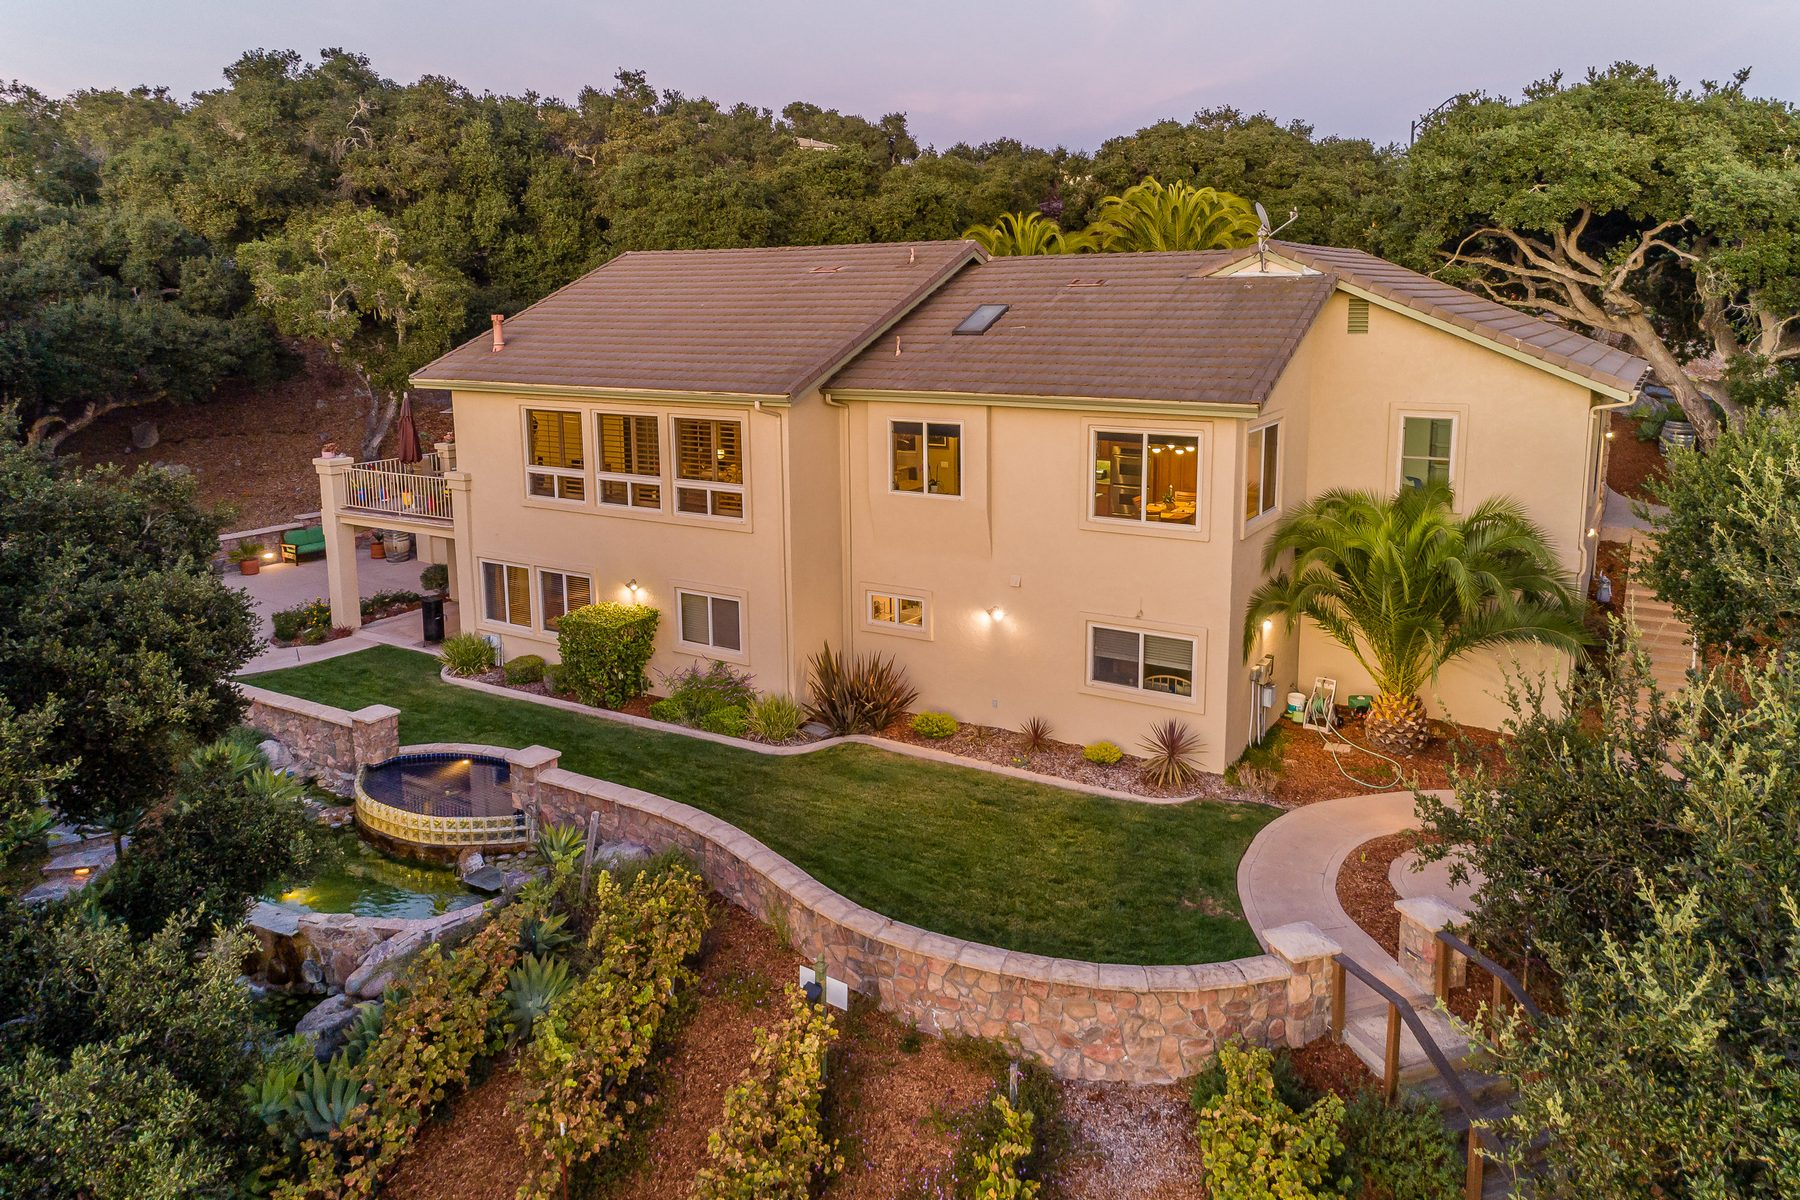 Single Family Homes for Sale at Private escape with Boutique Vineyard 575 Jenny Place Arroyo Grande, California 93420 United States